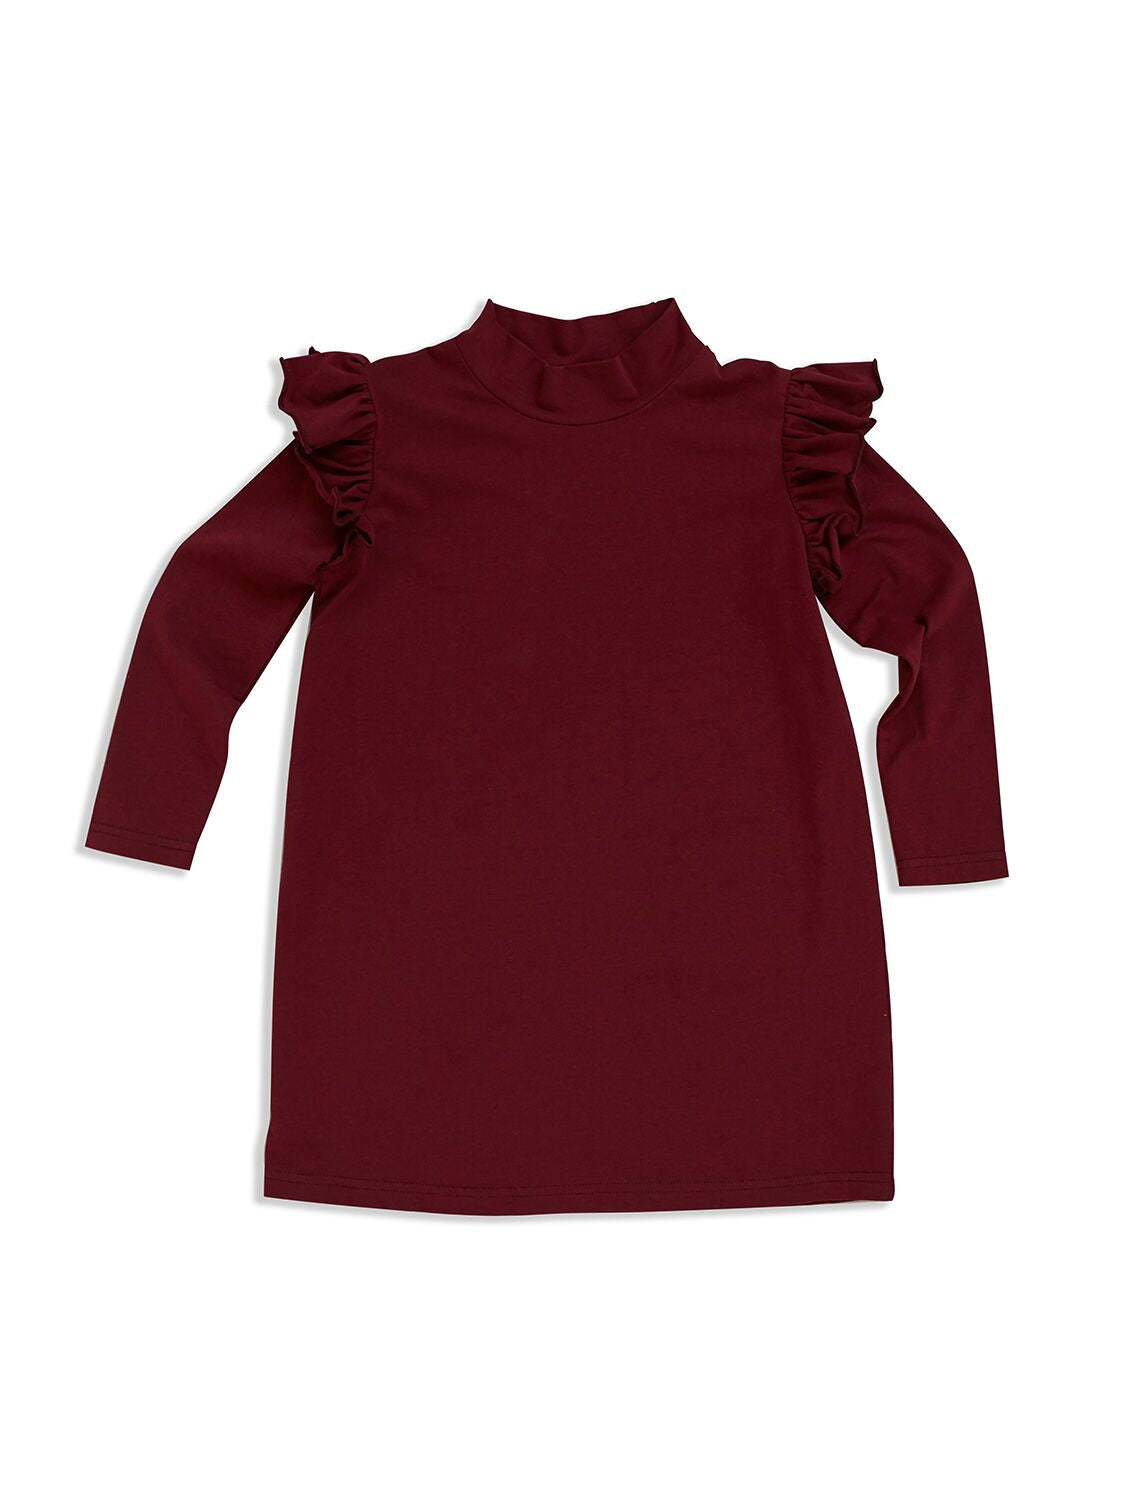 Ruby Turtle Neck Frill Dress